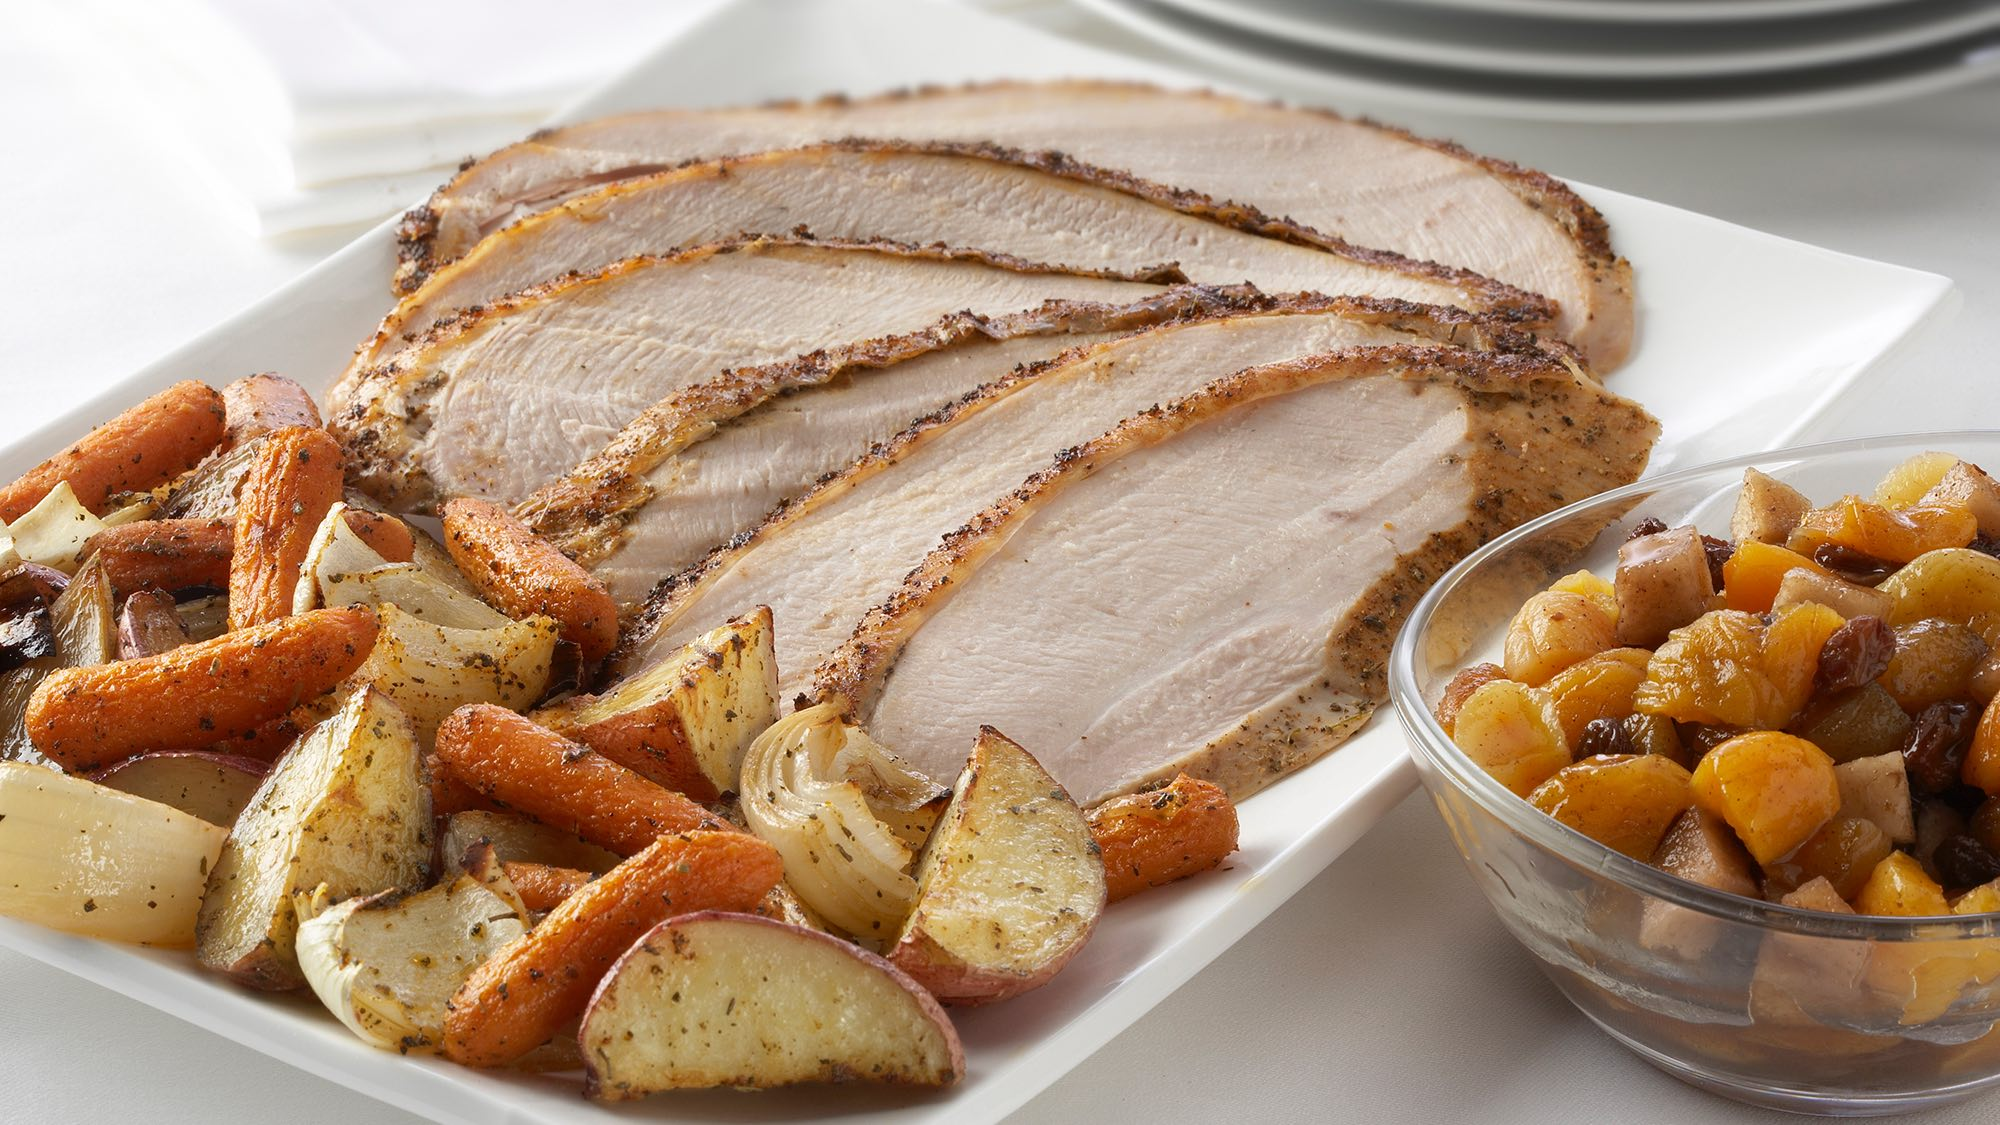 McCormick Seasoned Turkey Breast